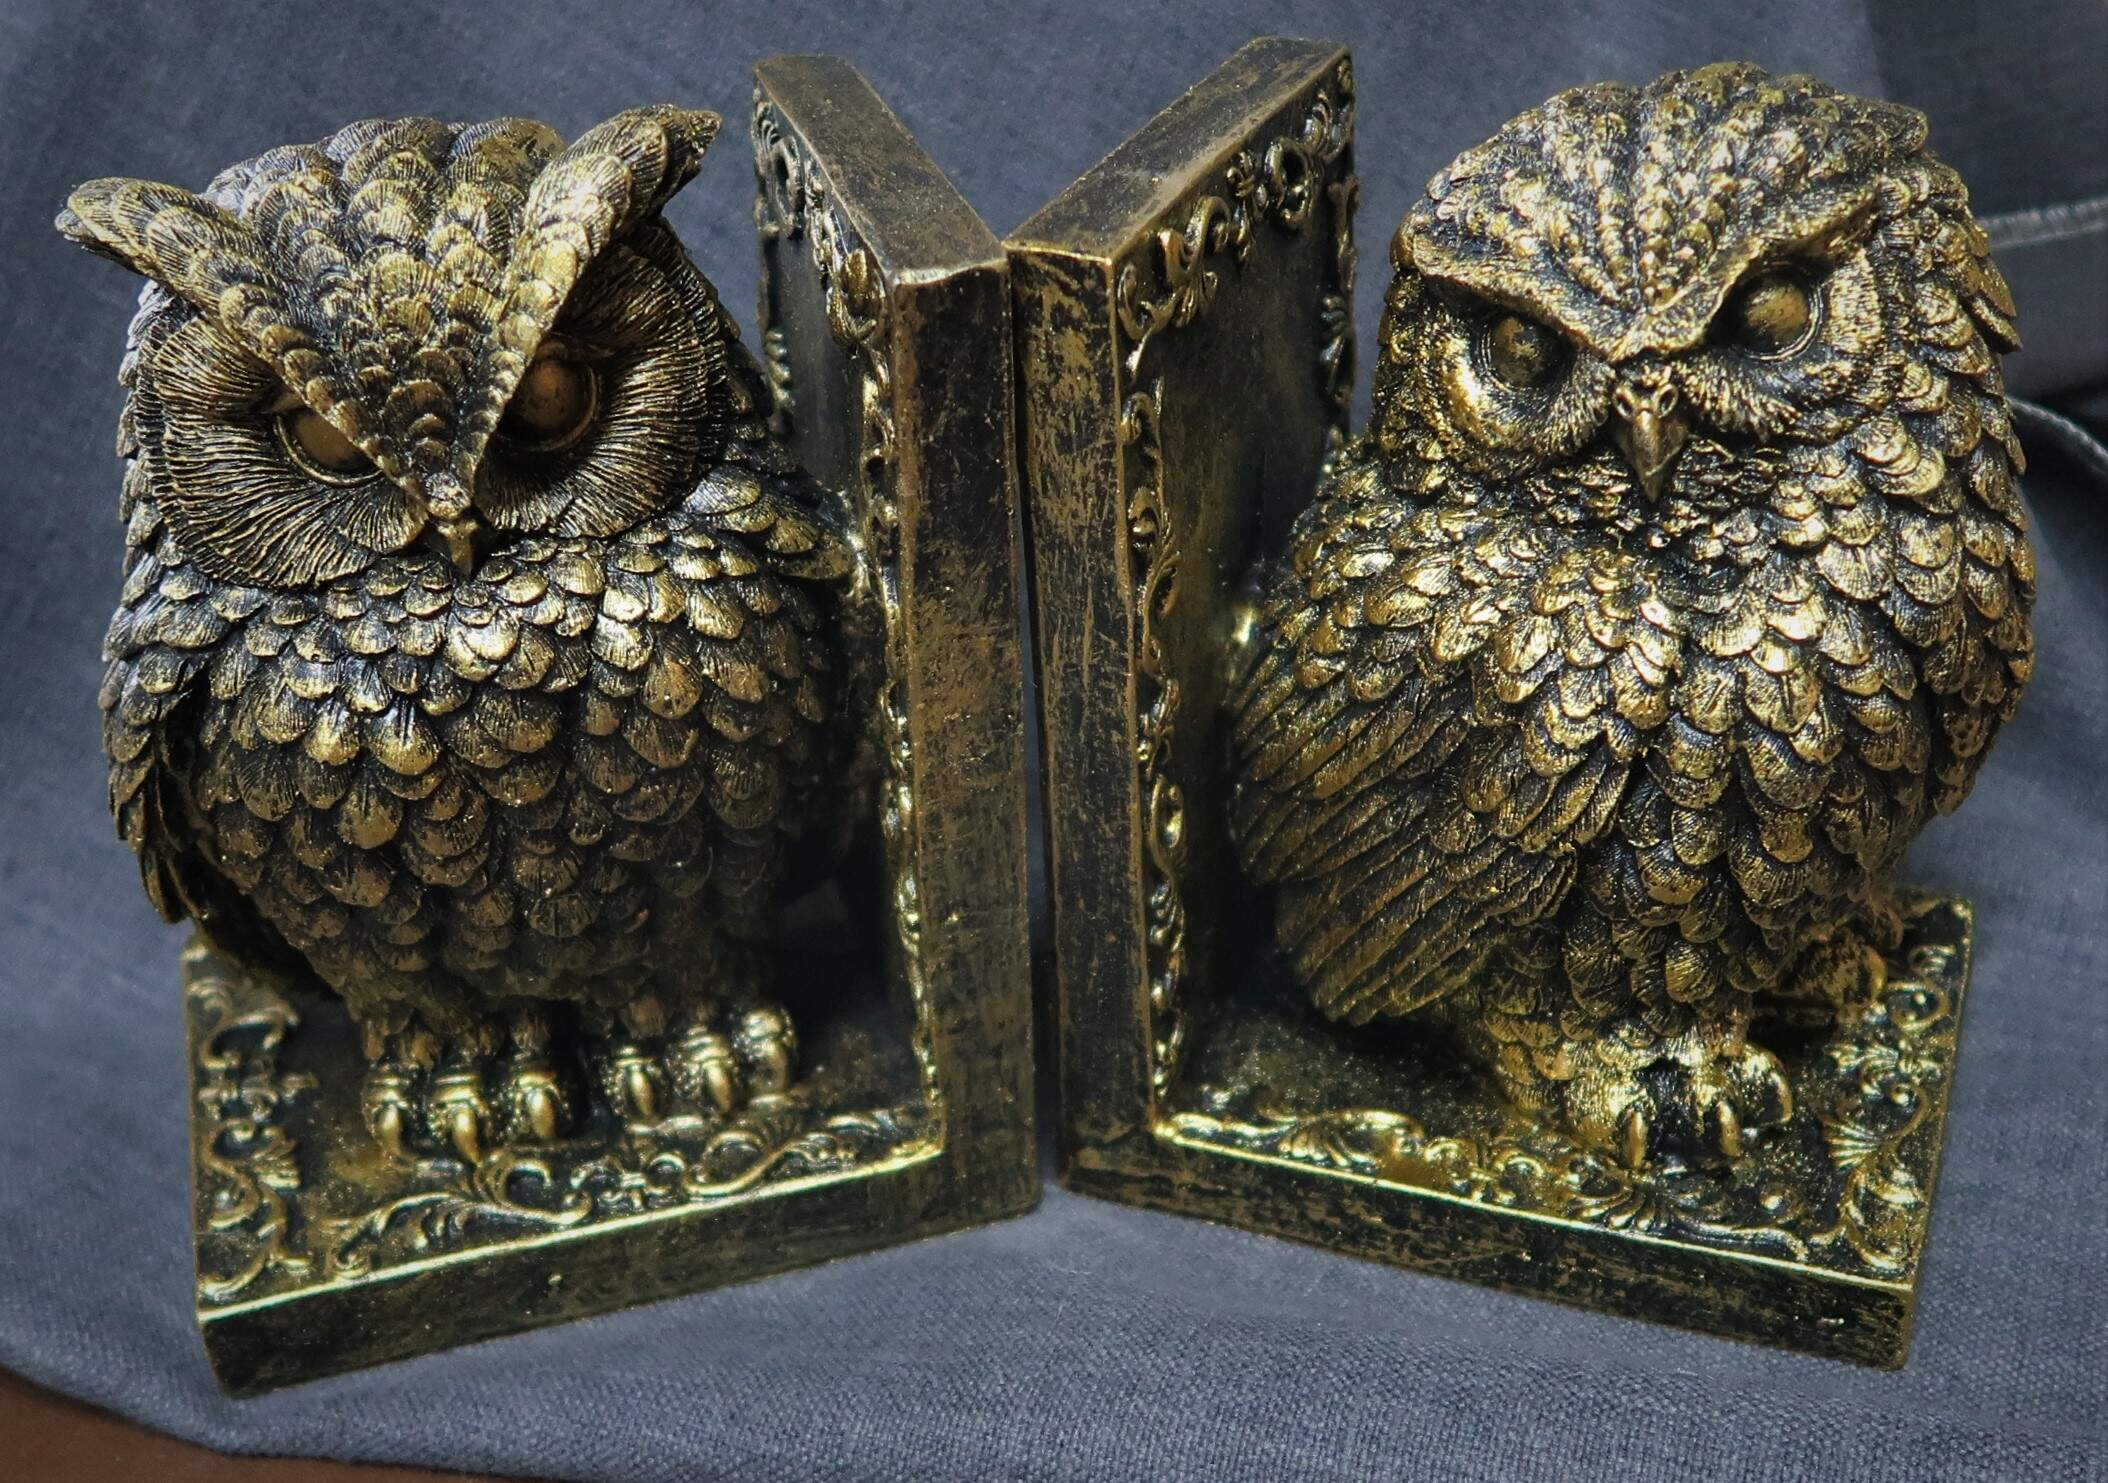 Owl bookends in resin.